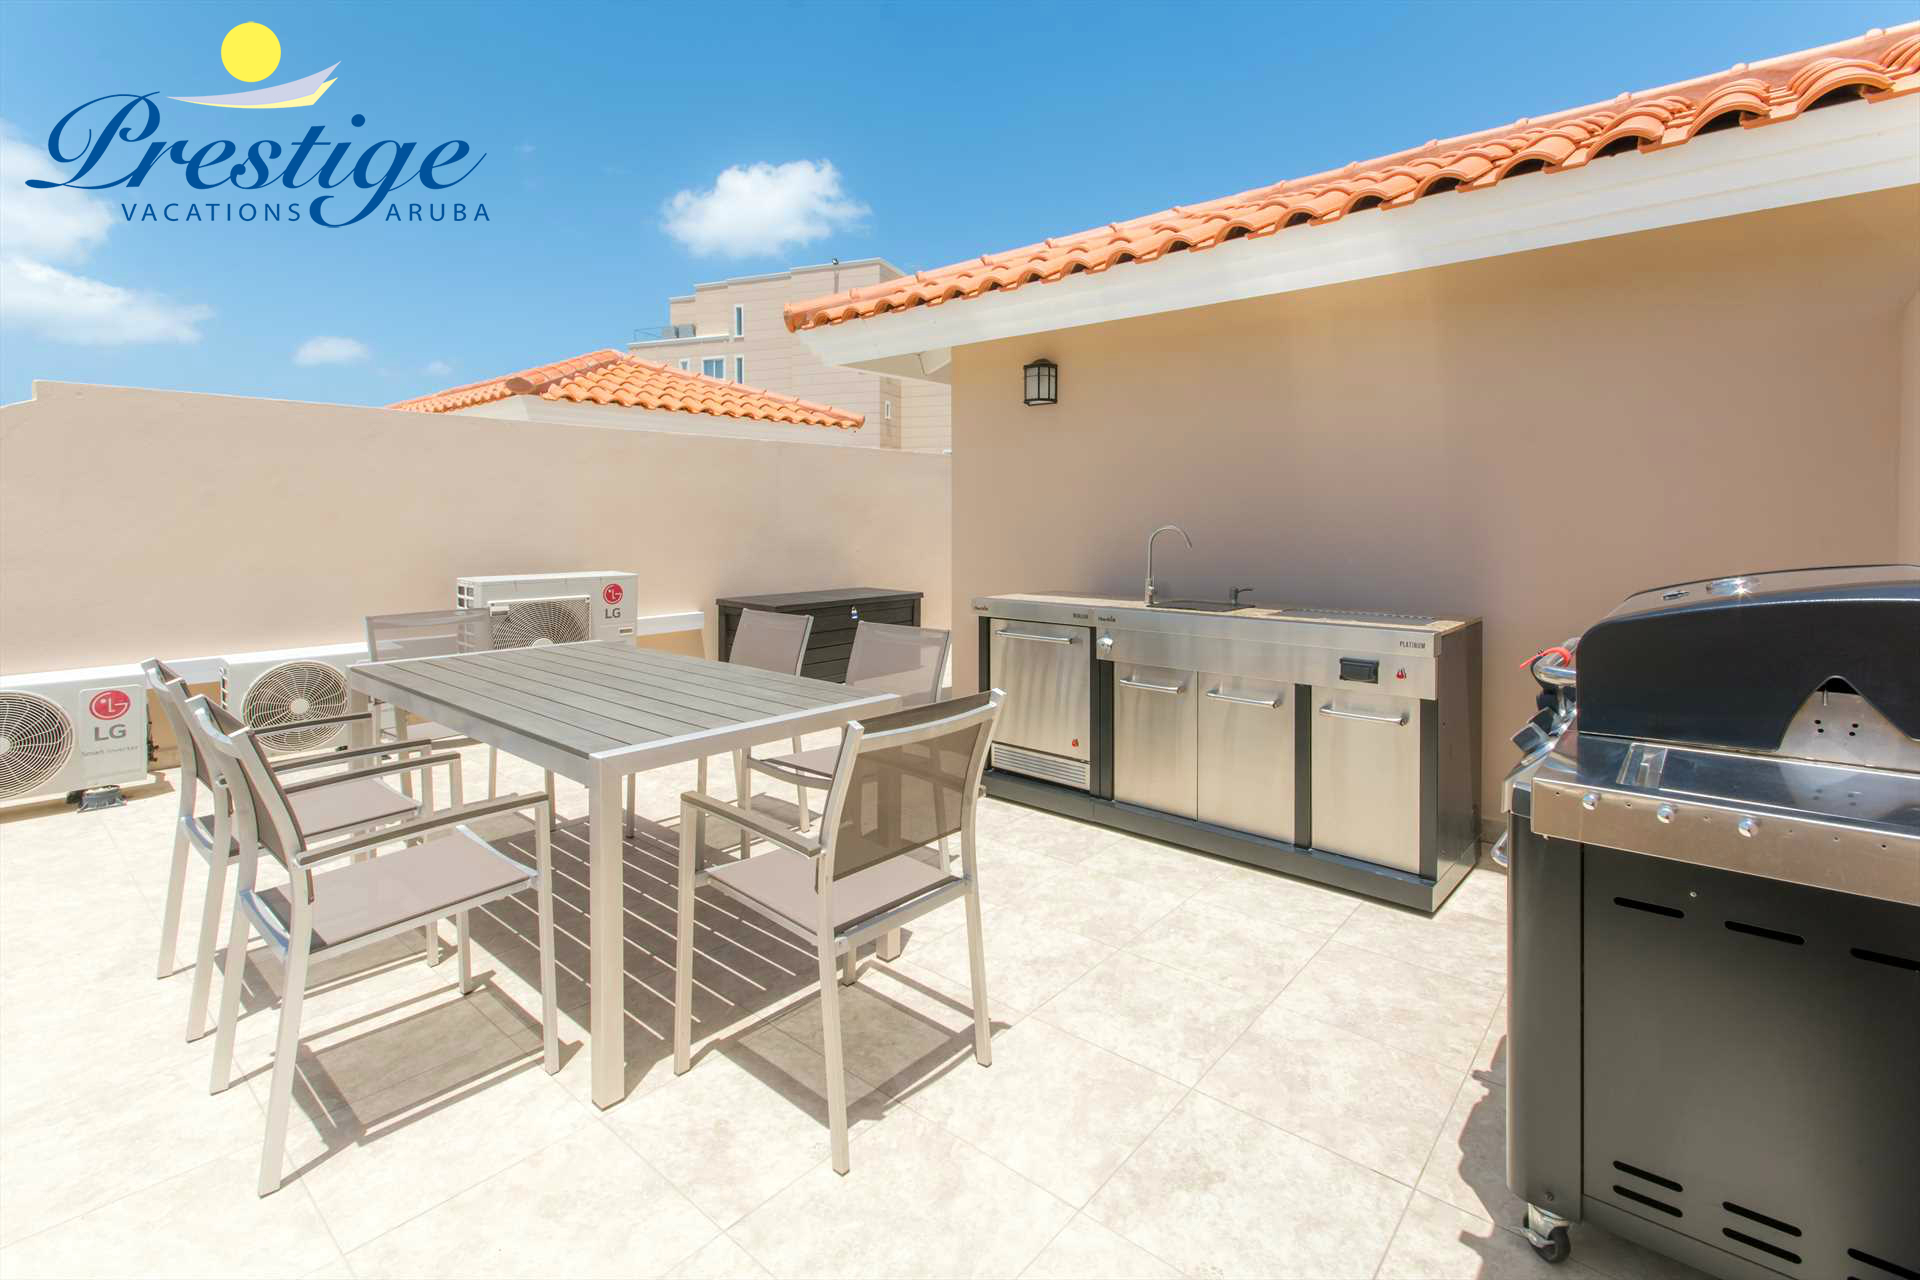 Your own outdoor kitchen and BBQ-grill with an outdoor dining table to enjoy your culinary delights